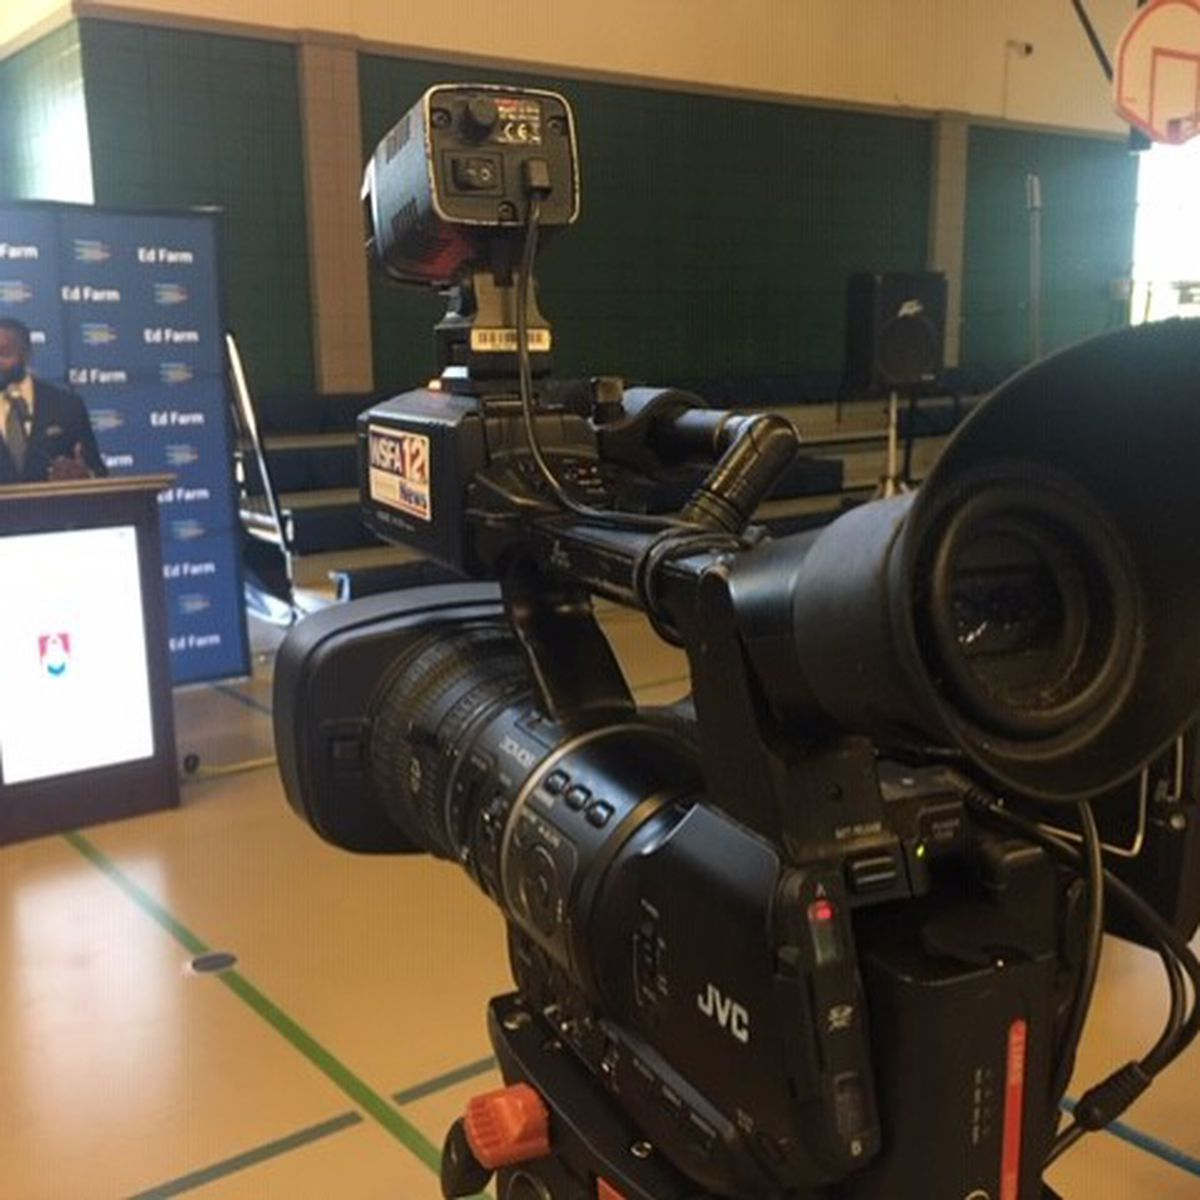 MGM Codes initiative unveiled At Johnnie Carr Middle School